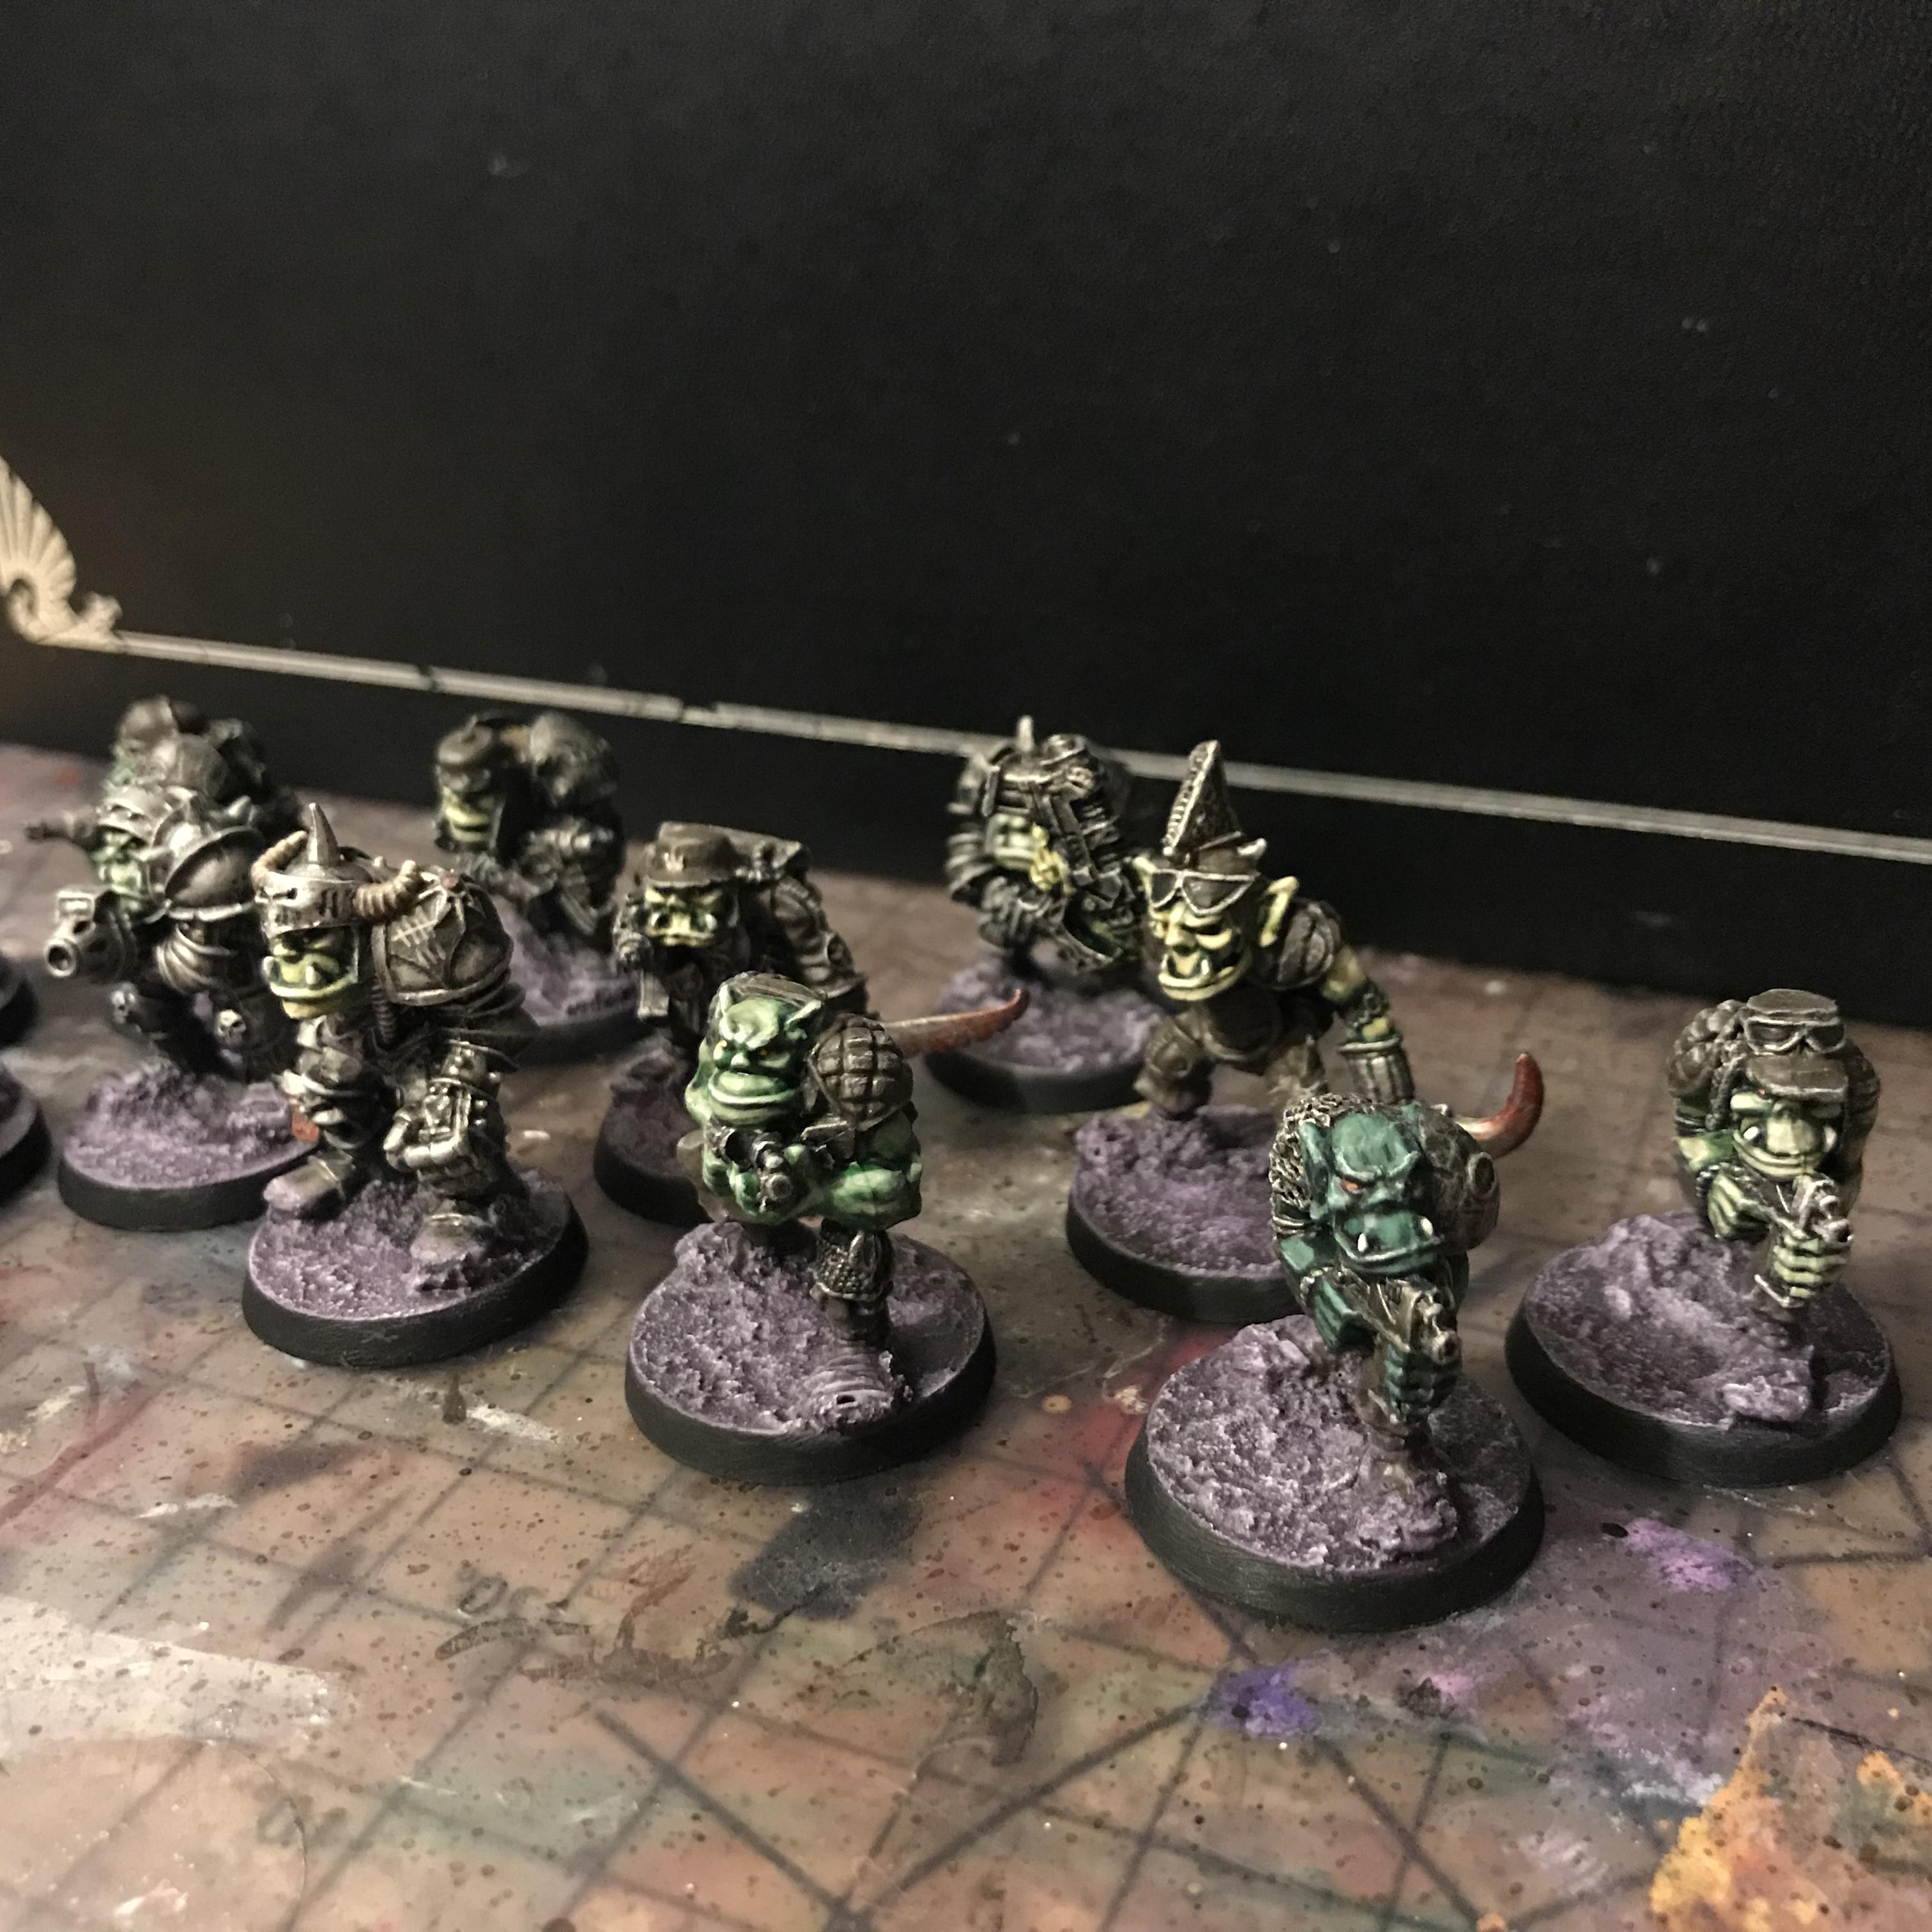 1st, Age, Armor, Army, Axes, Battle, Battles, Blood, Boy, Dark, Dark Angels, Darkness, Edition, Era, Evil, Folklore, Foundry, Gitz, Gloomspite, Goblinoid, Goblins, Green, Greenskin, Greenskinz, Grots, Horde, Looney, Mega, Mega Armored, Meganob, Miniatures, Mischievous, Mordheim, Mushrooms, Night, Nob, Of, Oldhammer, Orcoid, Orcs, Orks, Orky, Play, Powa, Power, Realm, Realms, Rogue, Role, Shroom, Shrooms, Skirmish, Small, Tiny, Trader, Warband, Warboss, Wargames, Wargaming, Warhammer 40,000, Warhammer Fantasy, Warmonger